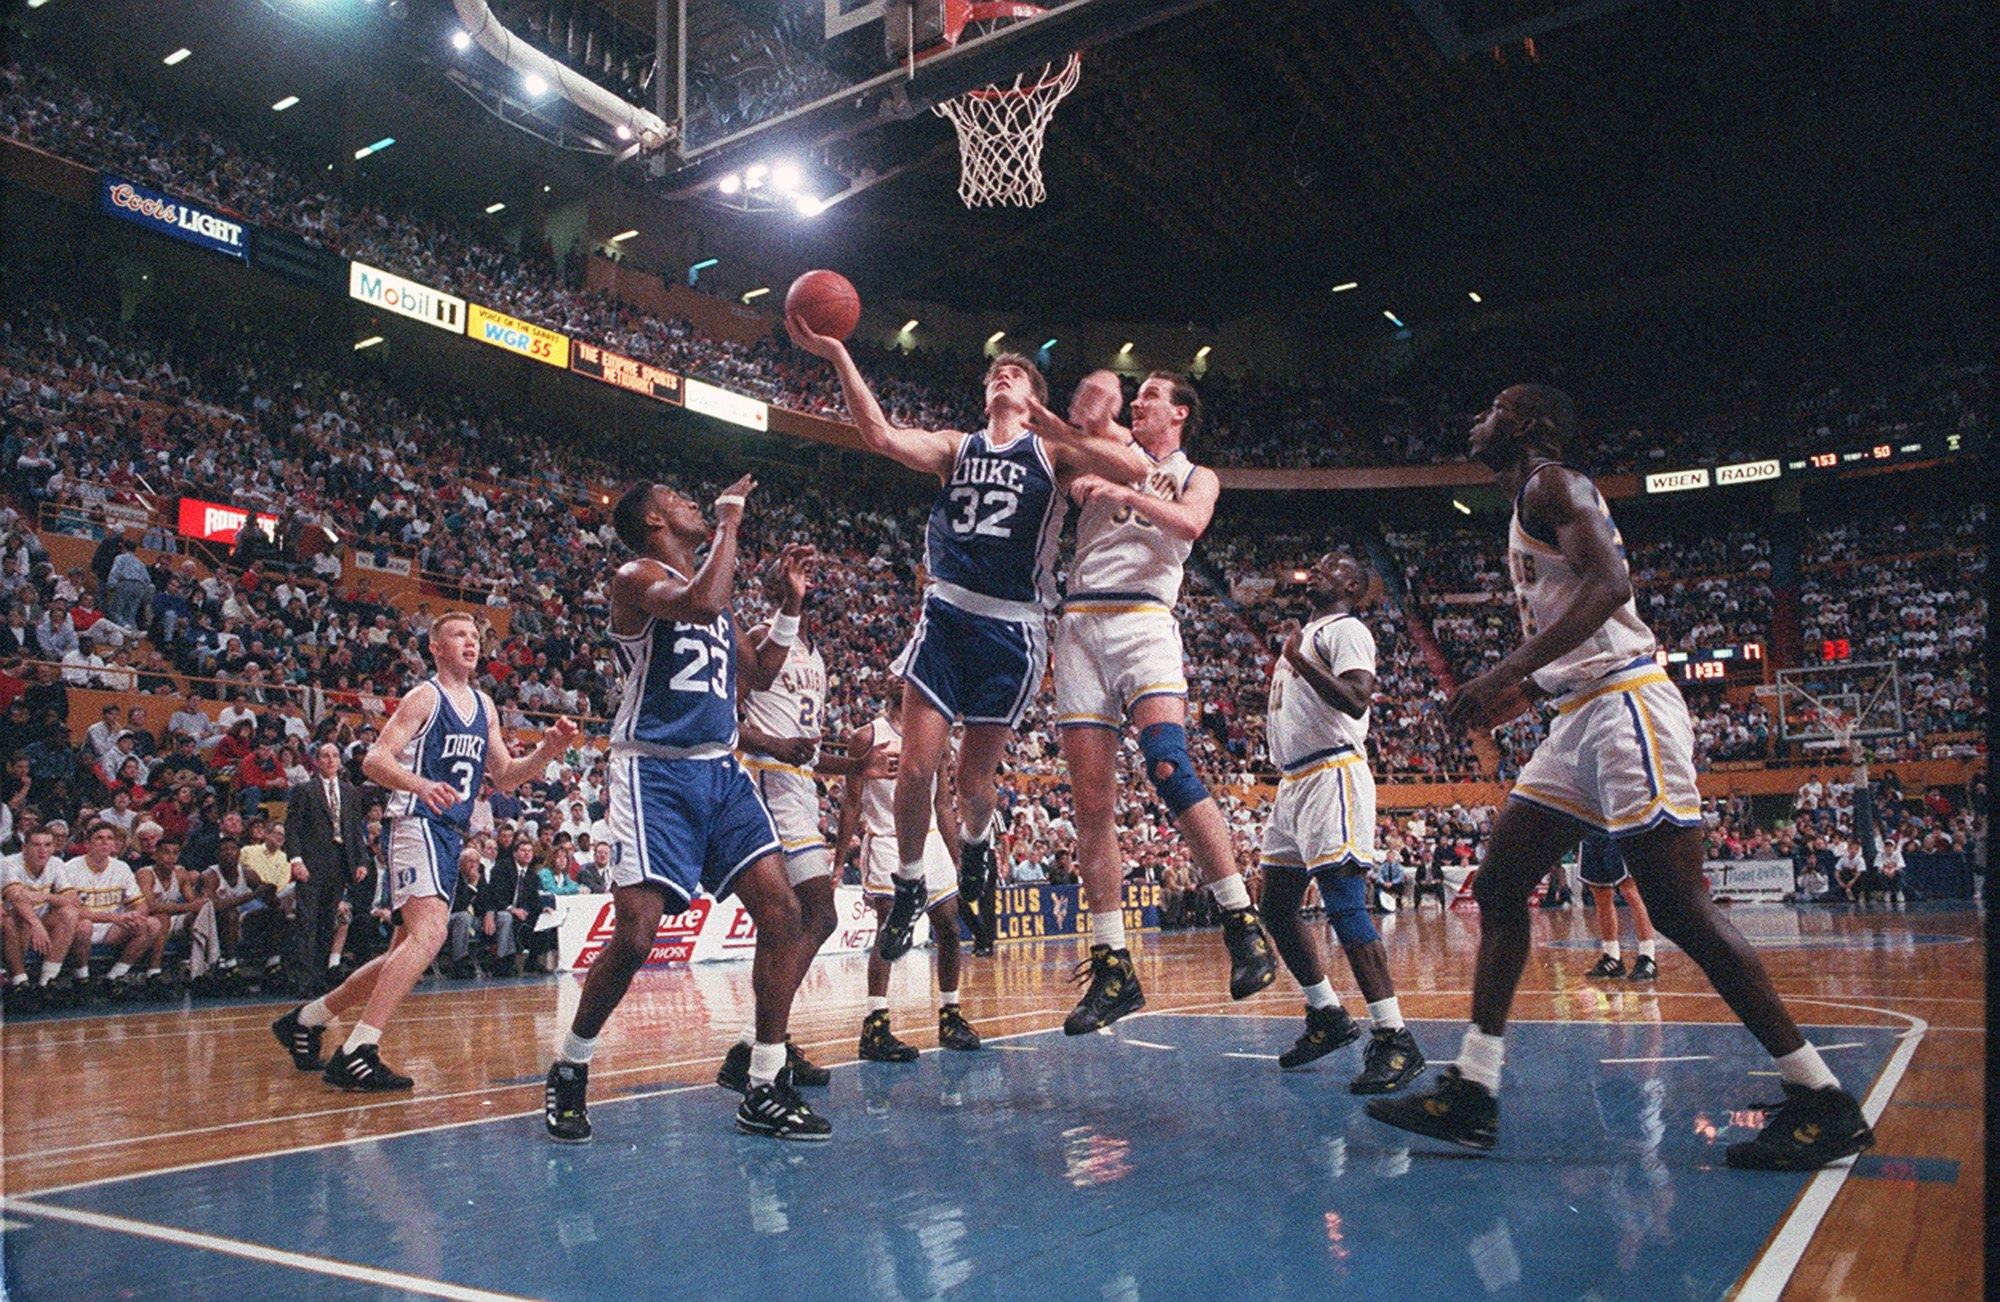 Christian Laettner, who was an all-time great for Duke, grew up in Angola and played for Nichols.